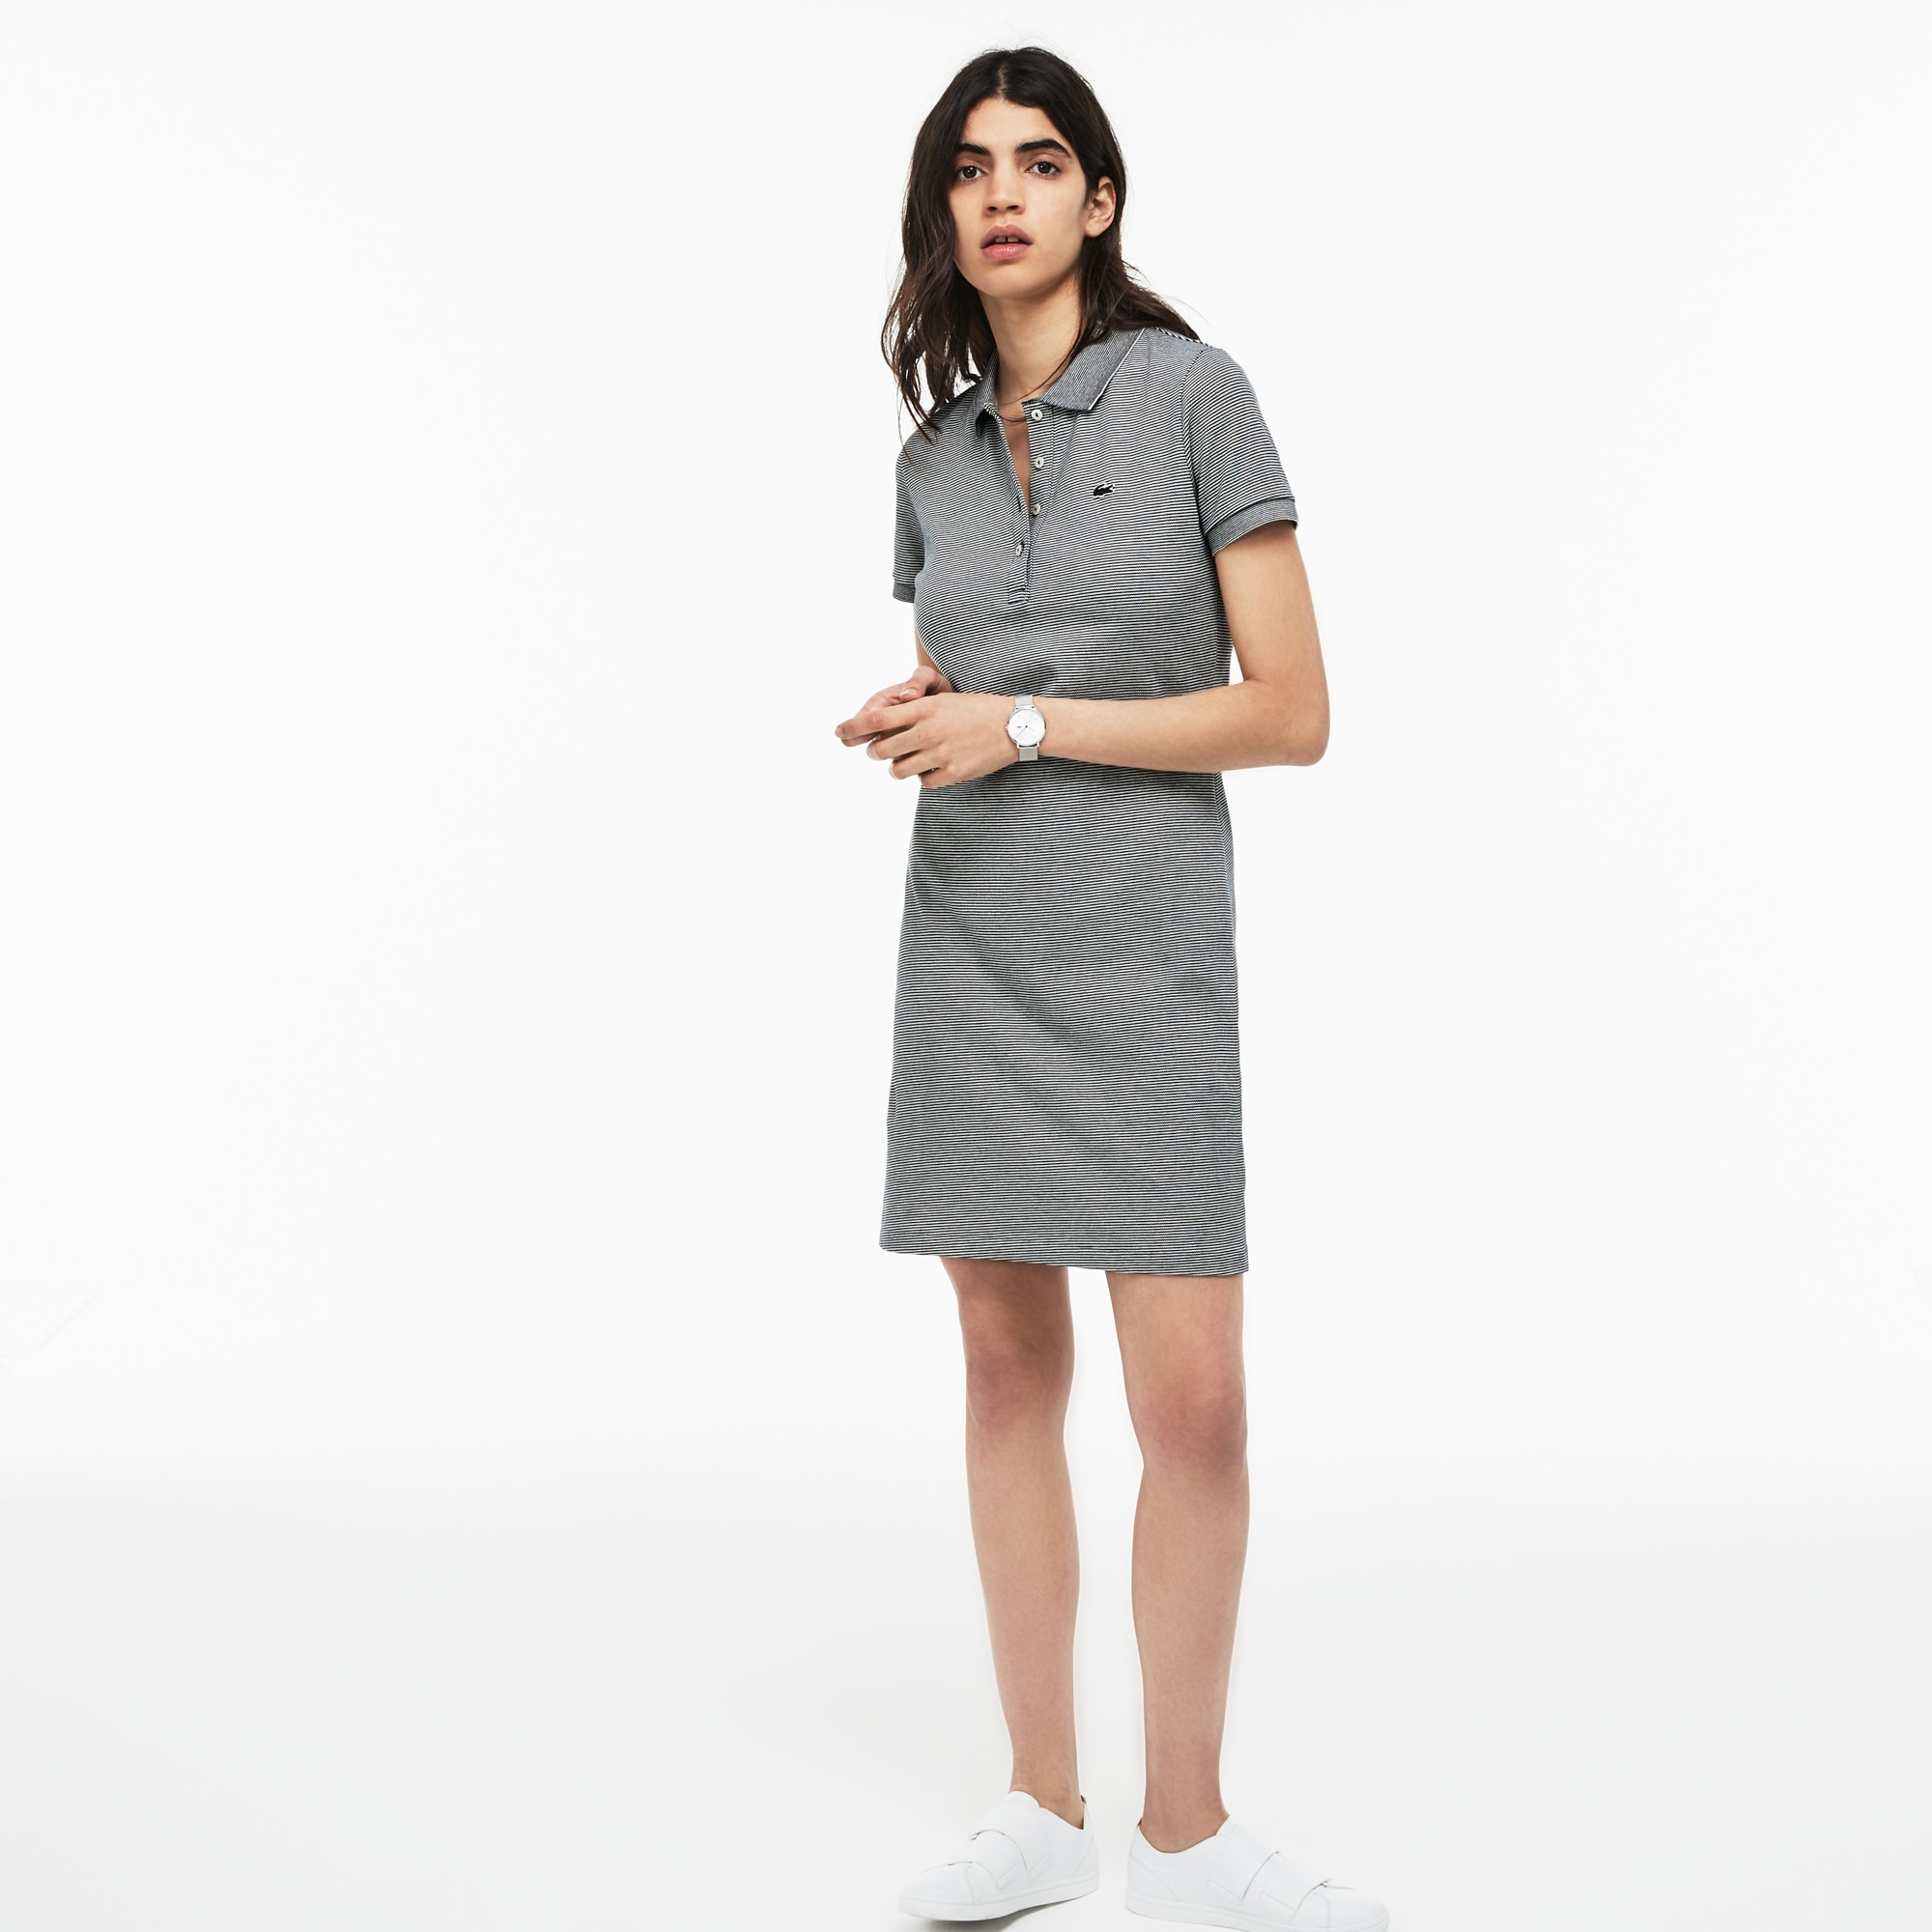 Women's Slim Fit Pinstriped Stretch Mini Piqué Polo Dress